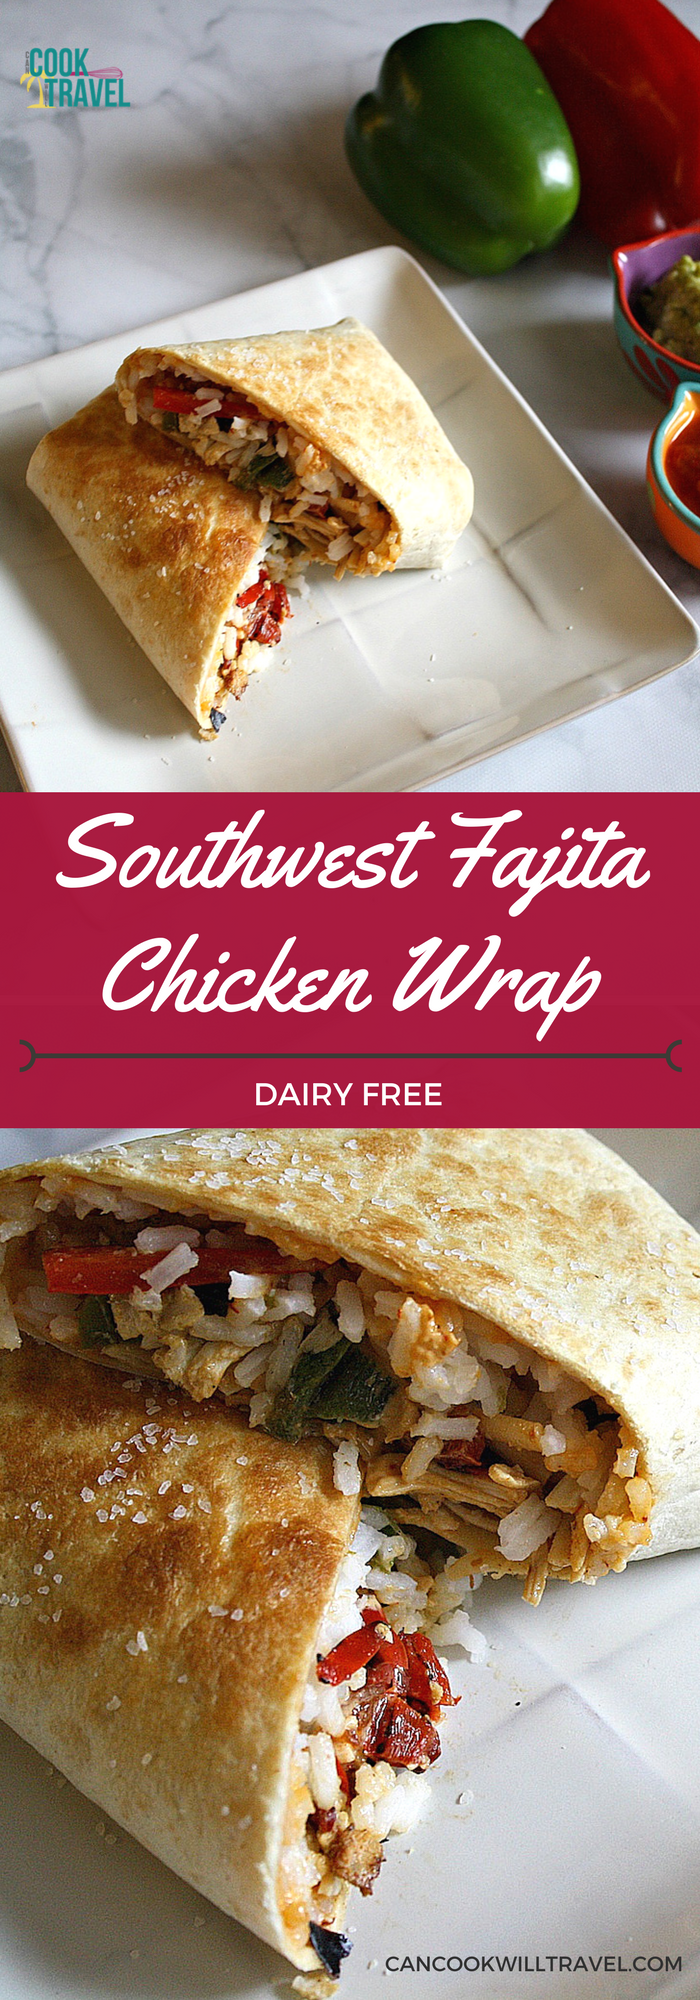 southwest fajita chicken wraps